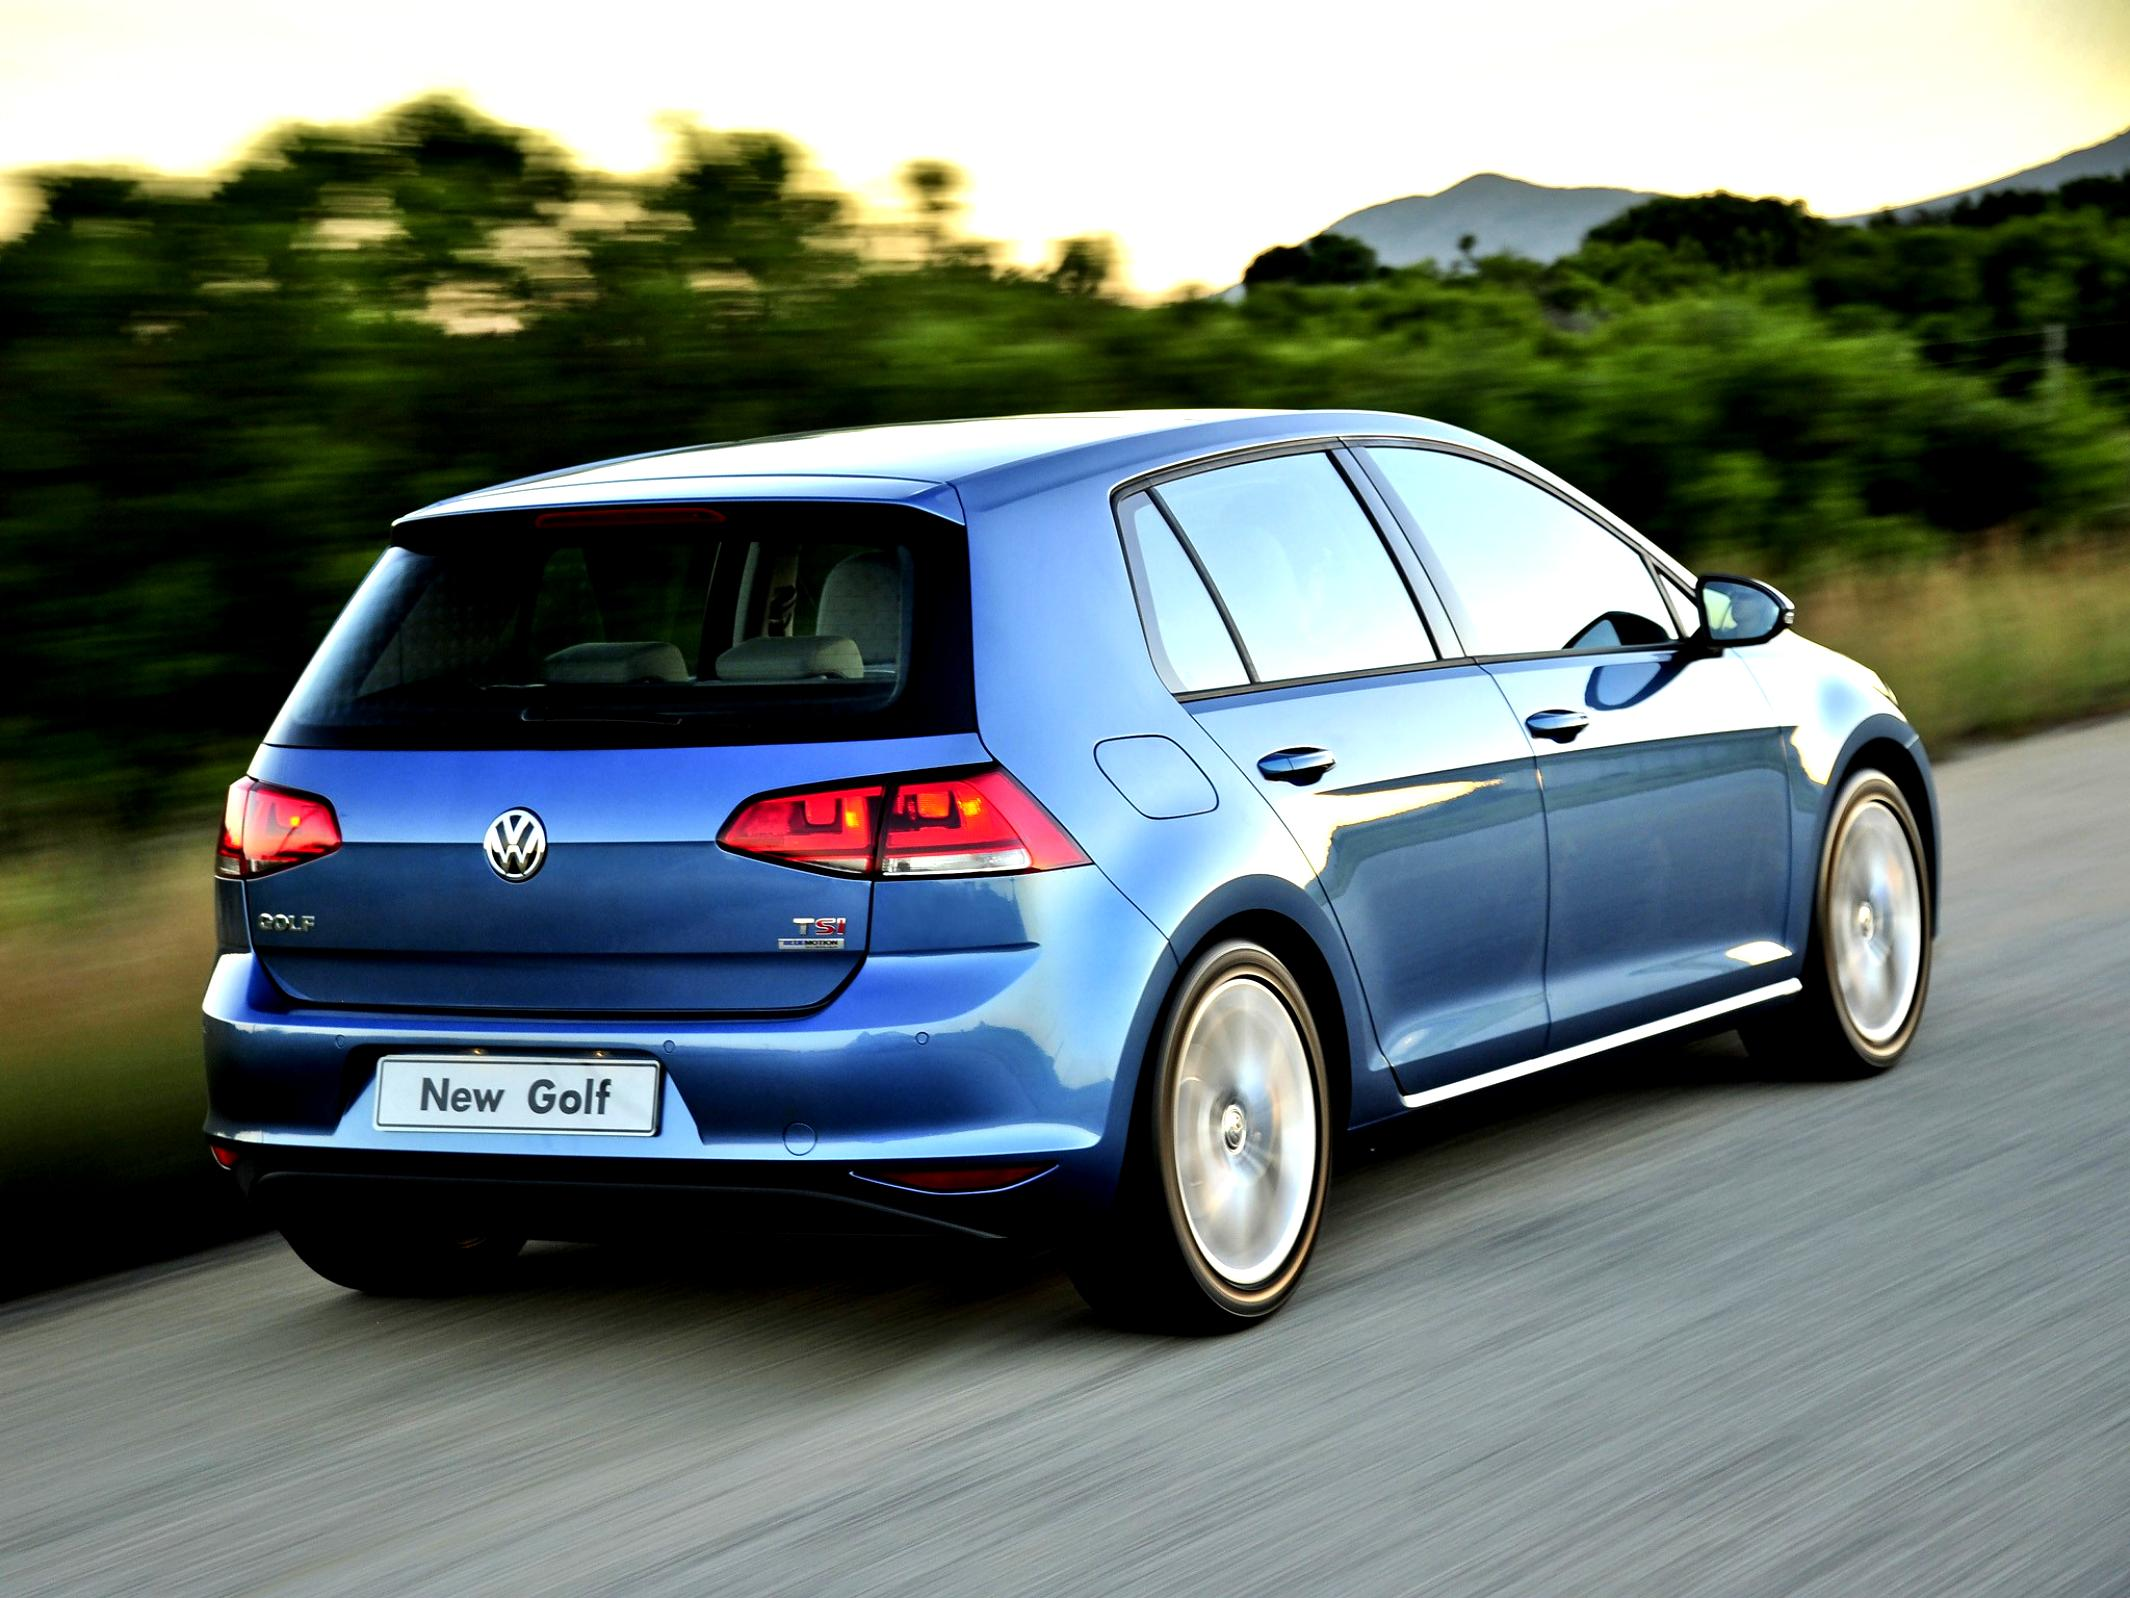 Volkswagen Golf VII 5 Doors 2012 #76